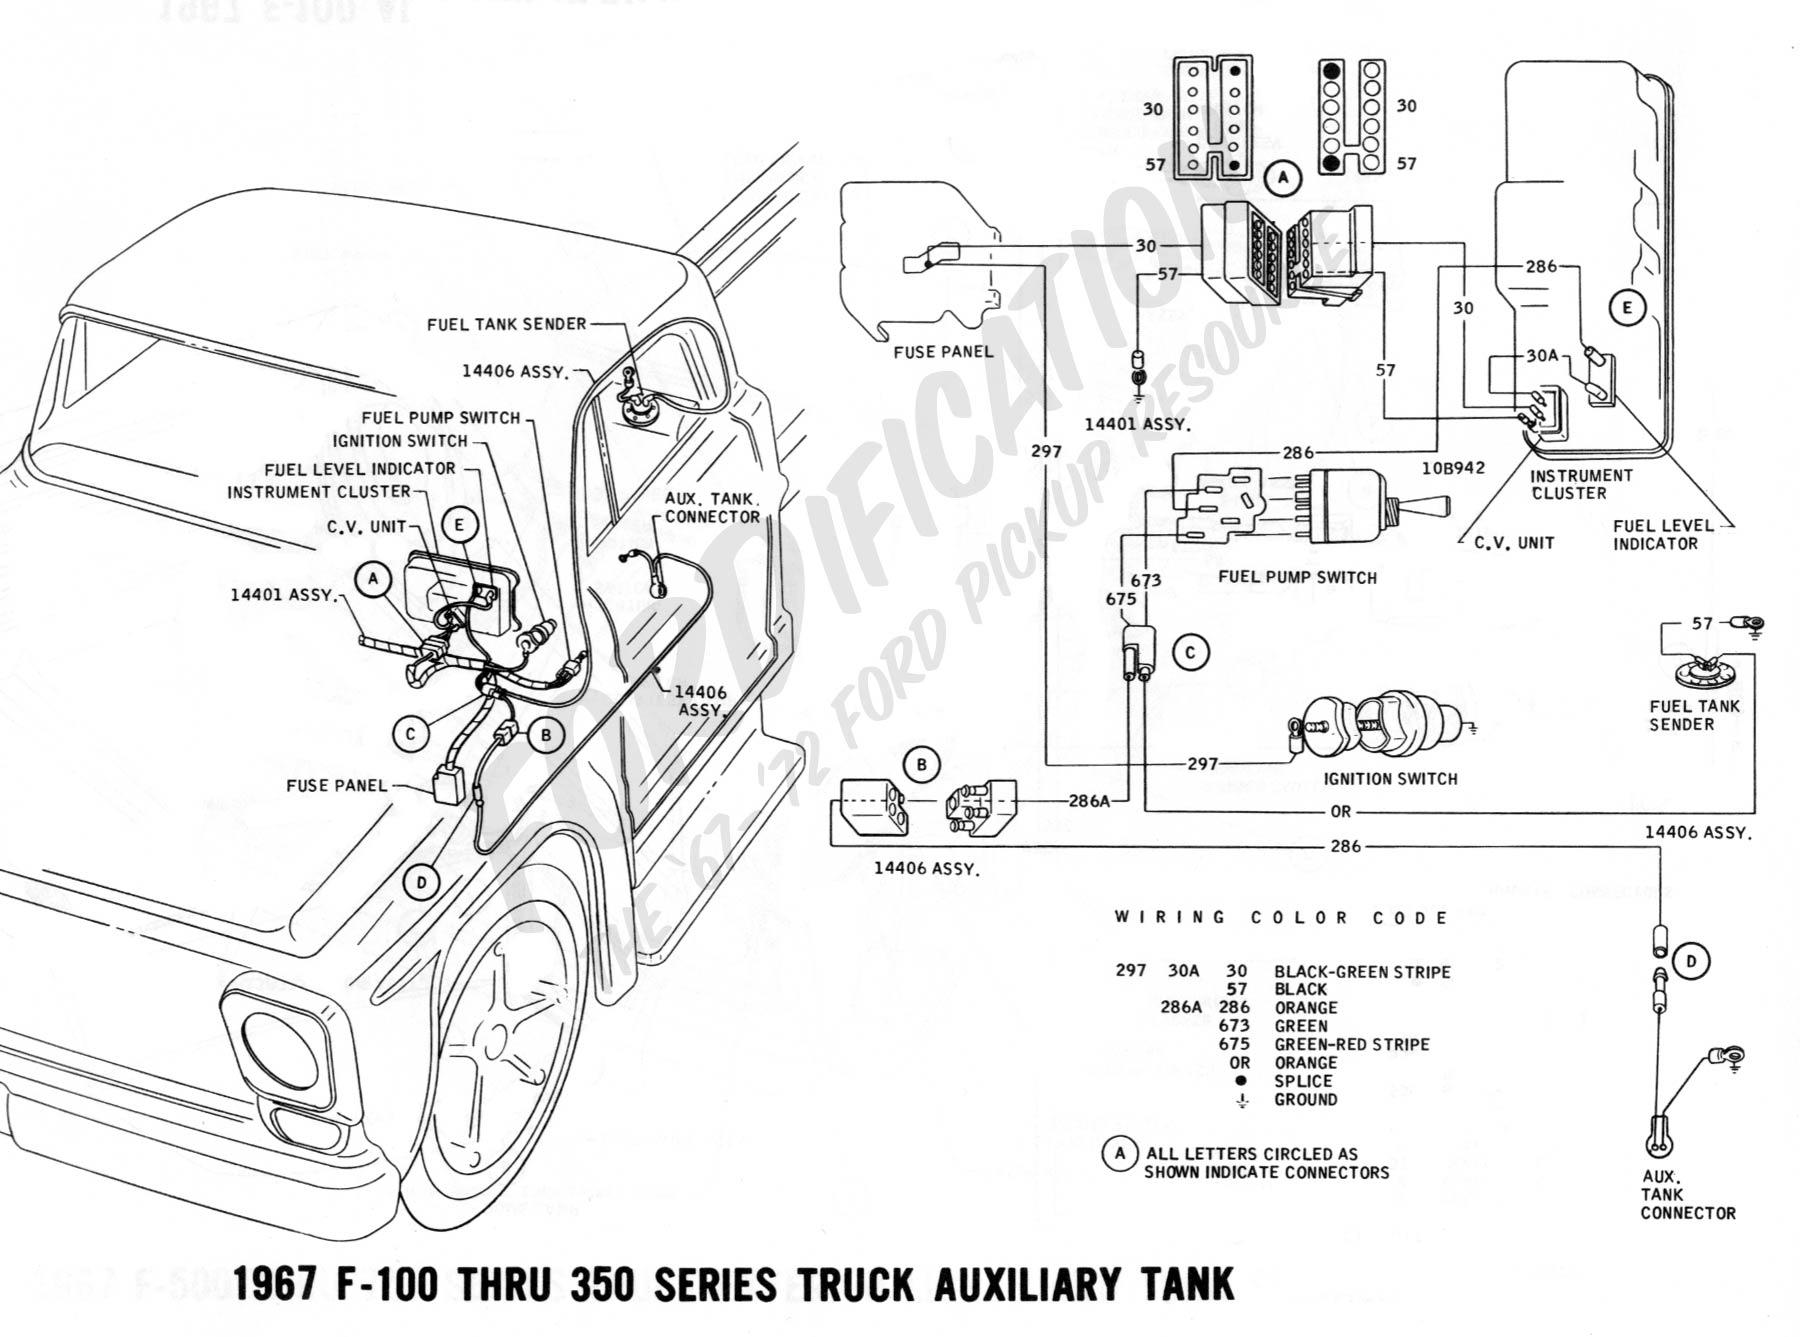 wiring 1967auxtank ford truck technical drawings and schematics section h wiring 94 F150 Wiring Diagram at n-0.co